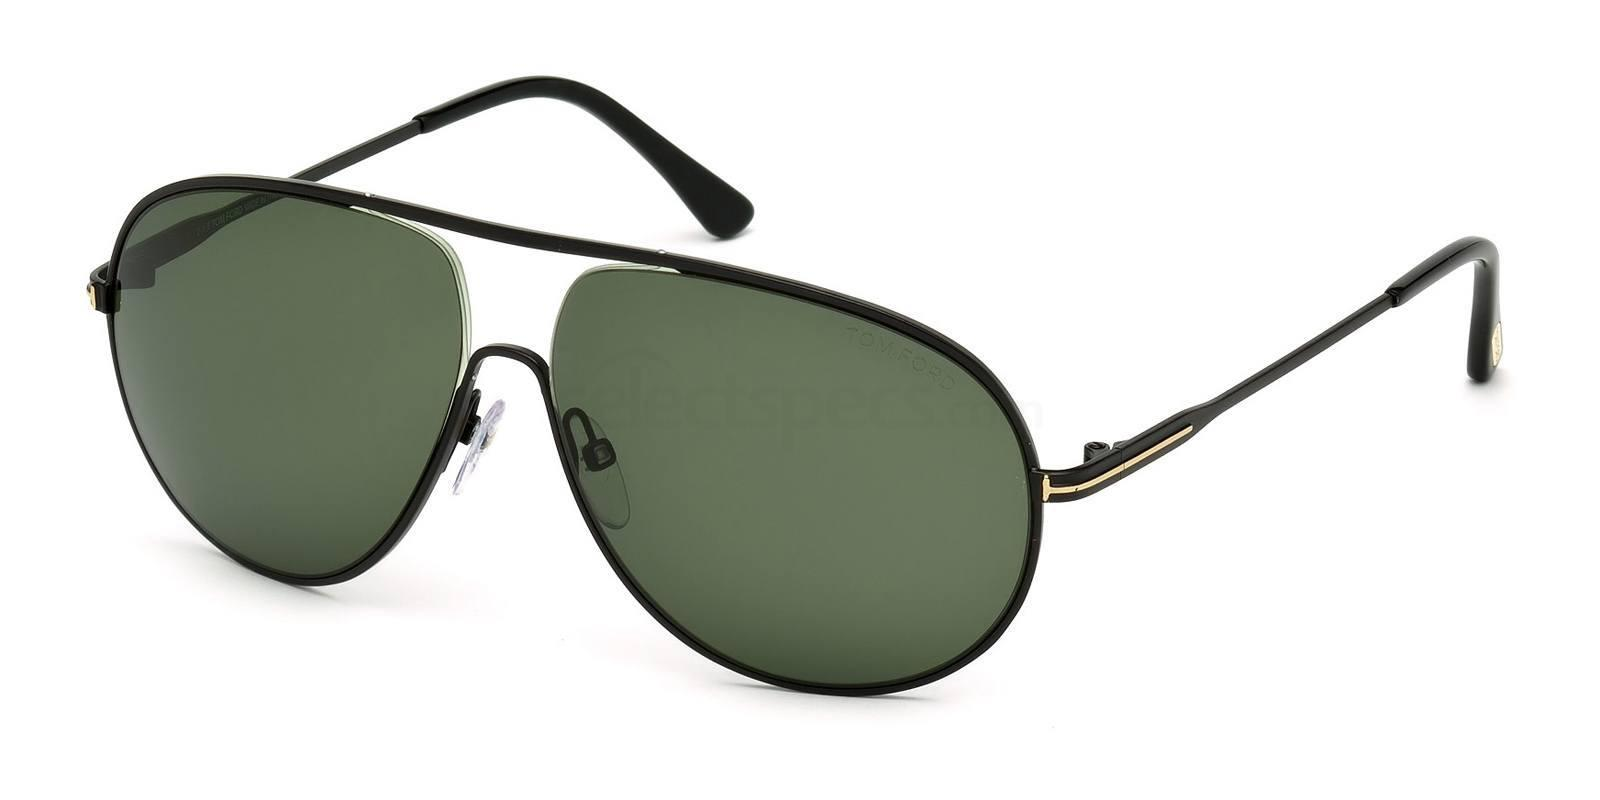 02N FT0450 Sunglasses, Tom Ford